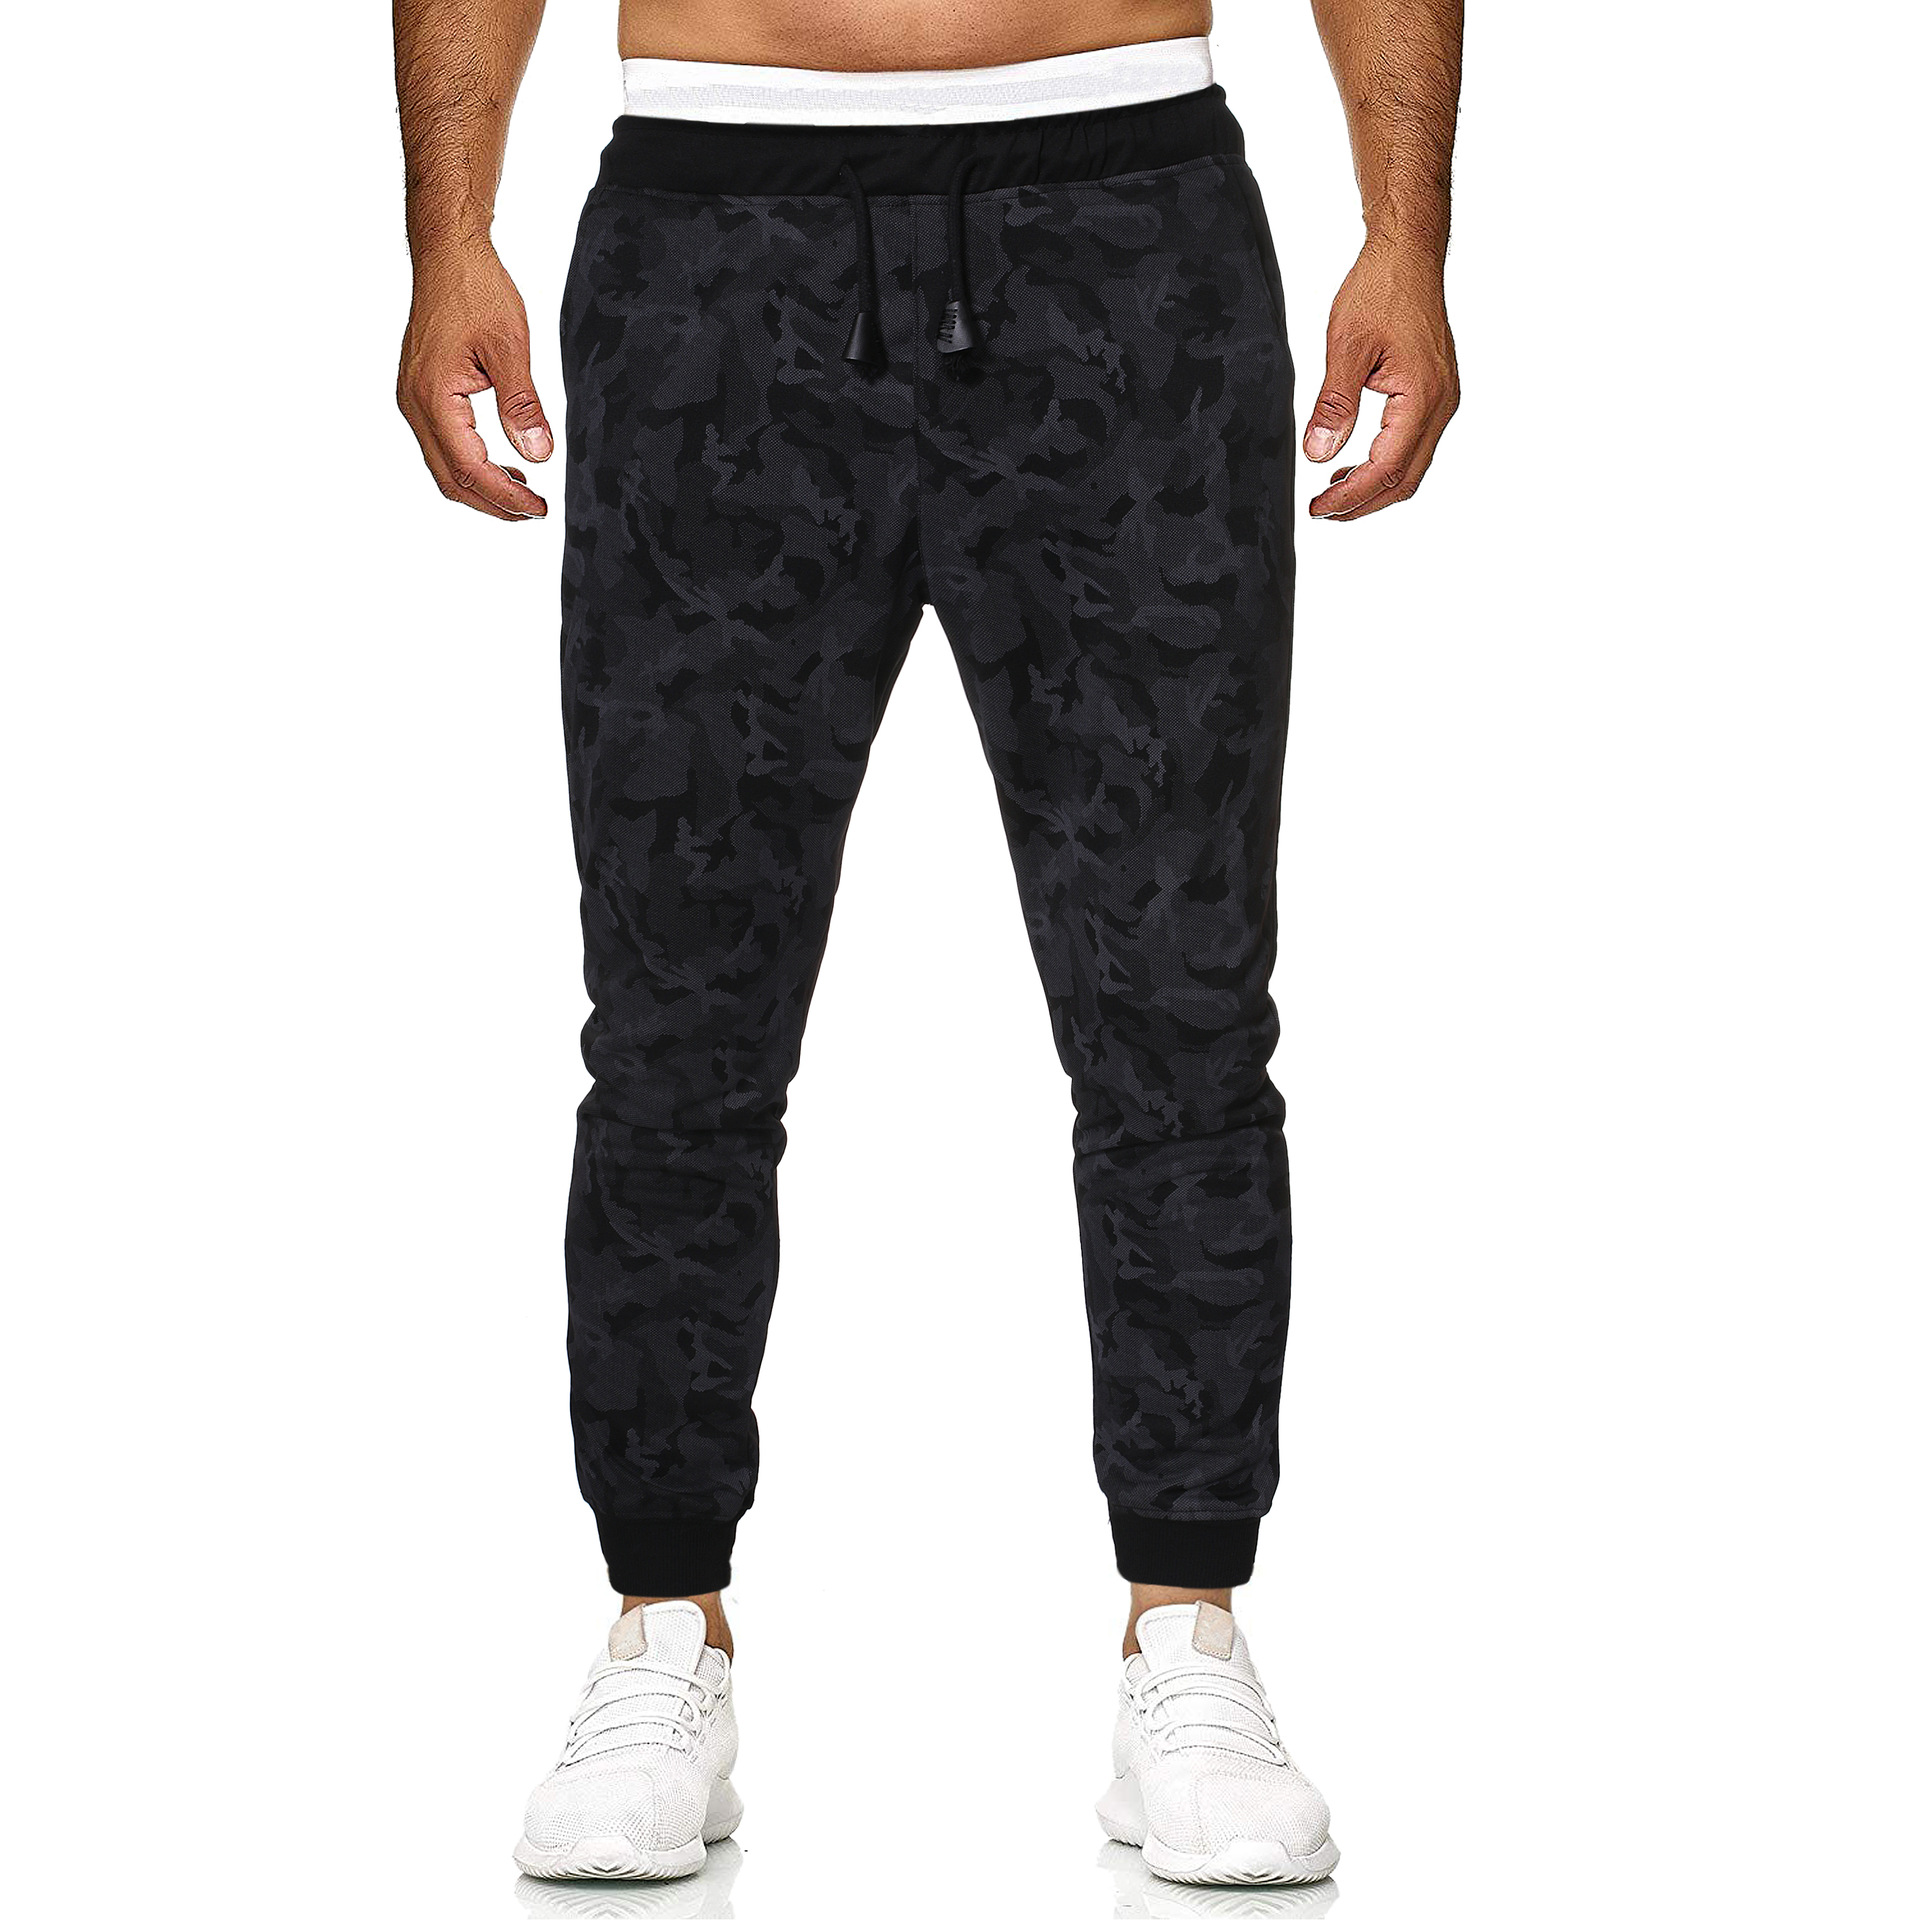 Summer New Products MEN'S Casual Pants Western Style Teenager Sports Casual Camouflage Harem Pants Men Straight-Leg Trousers